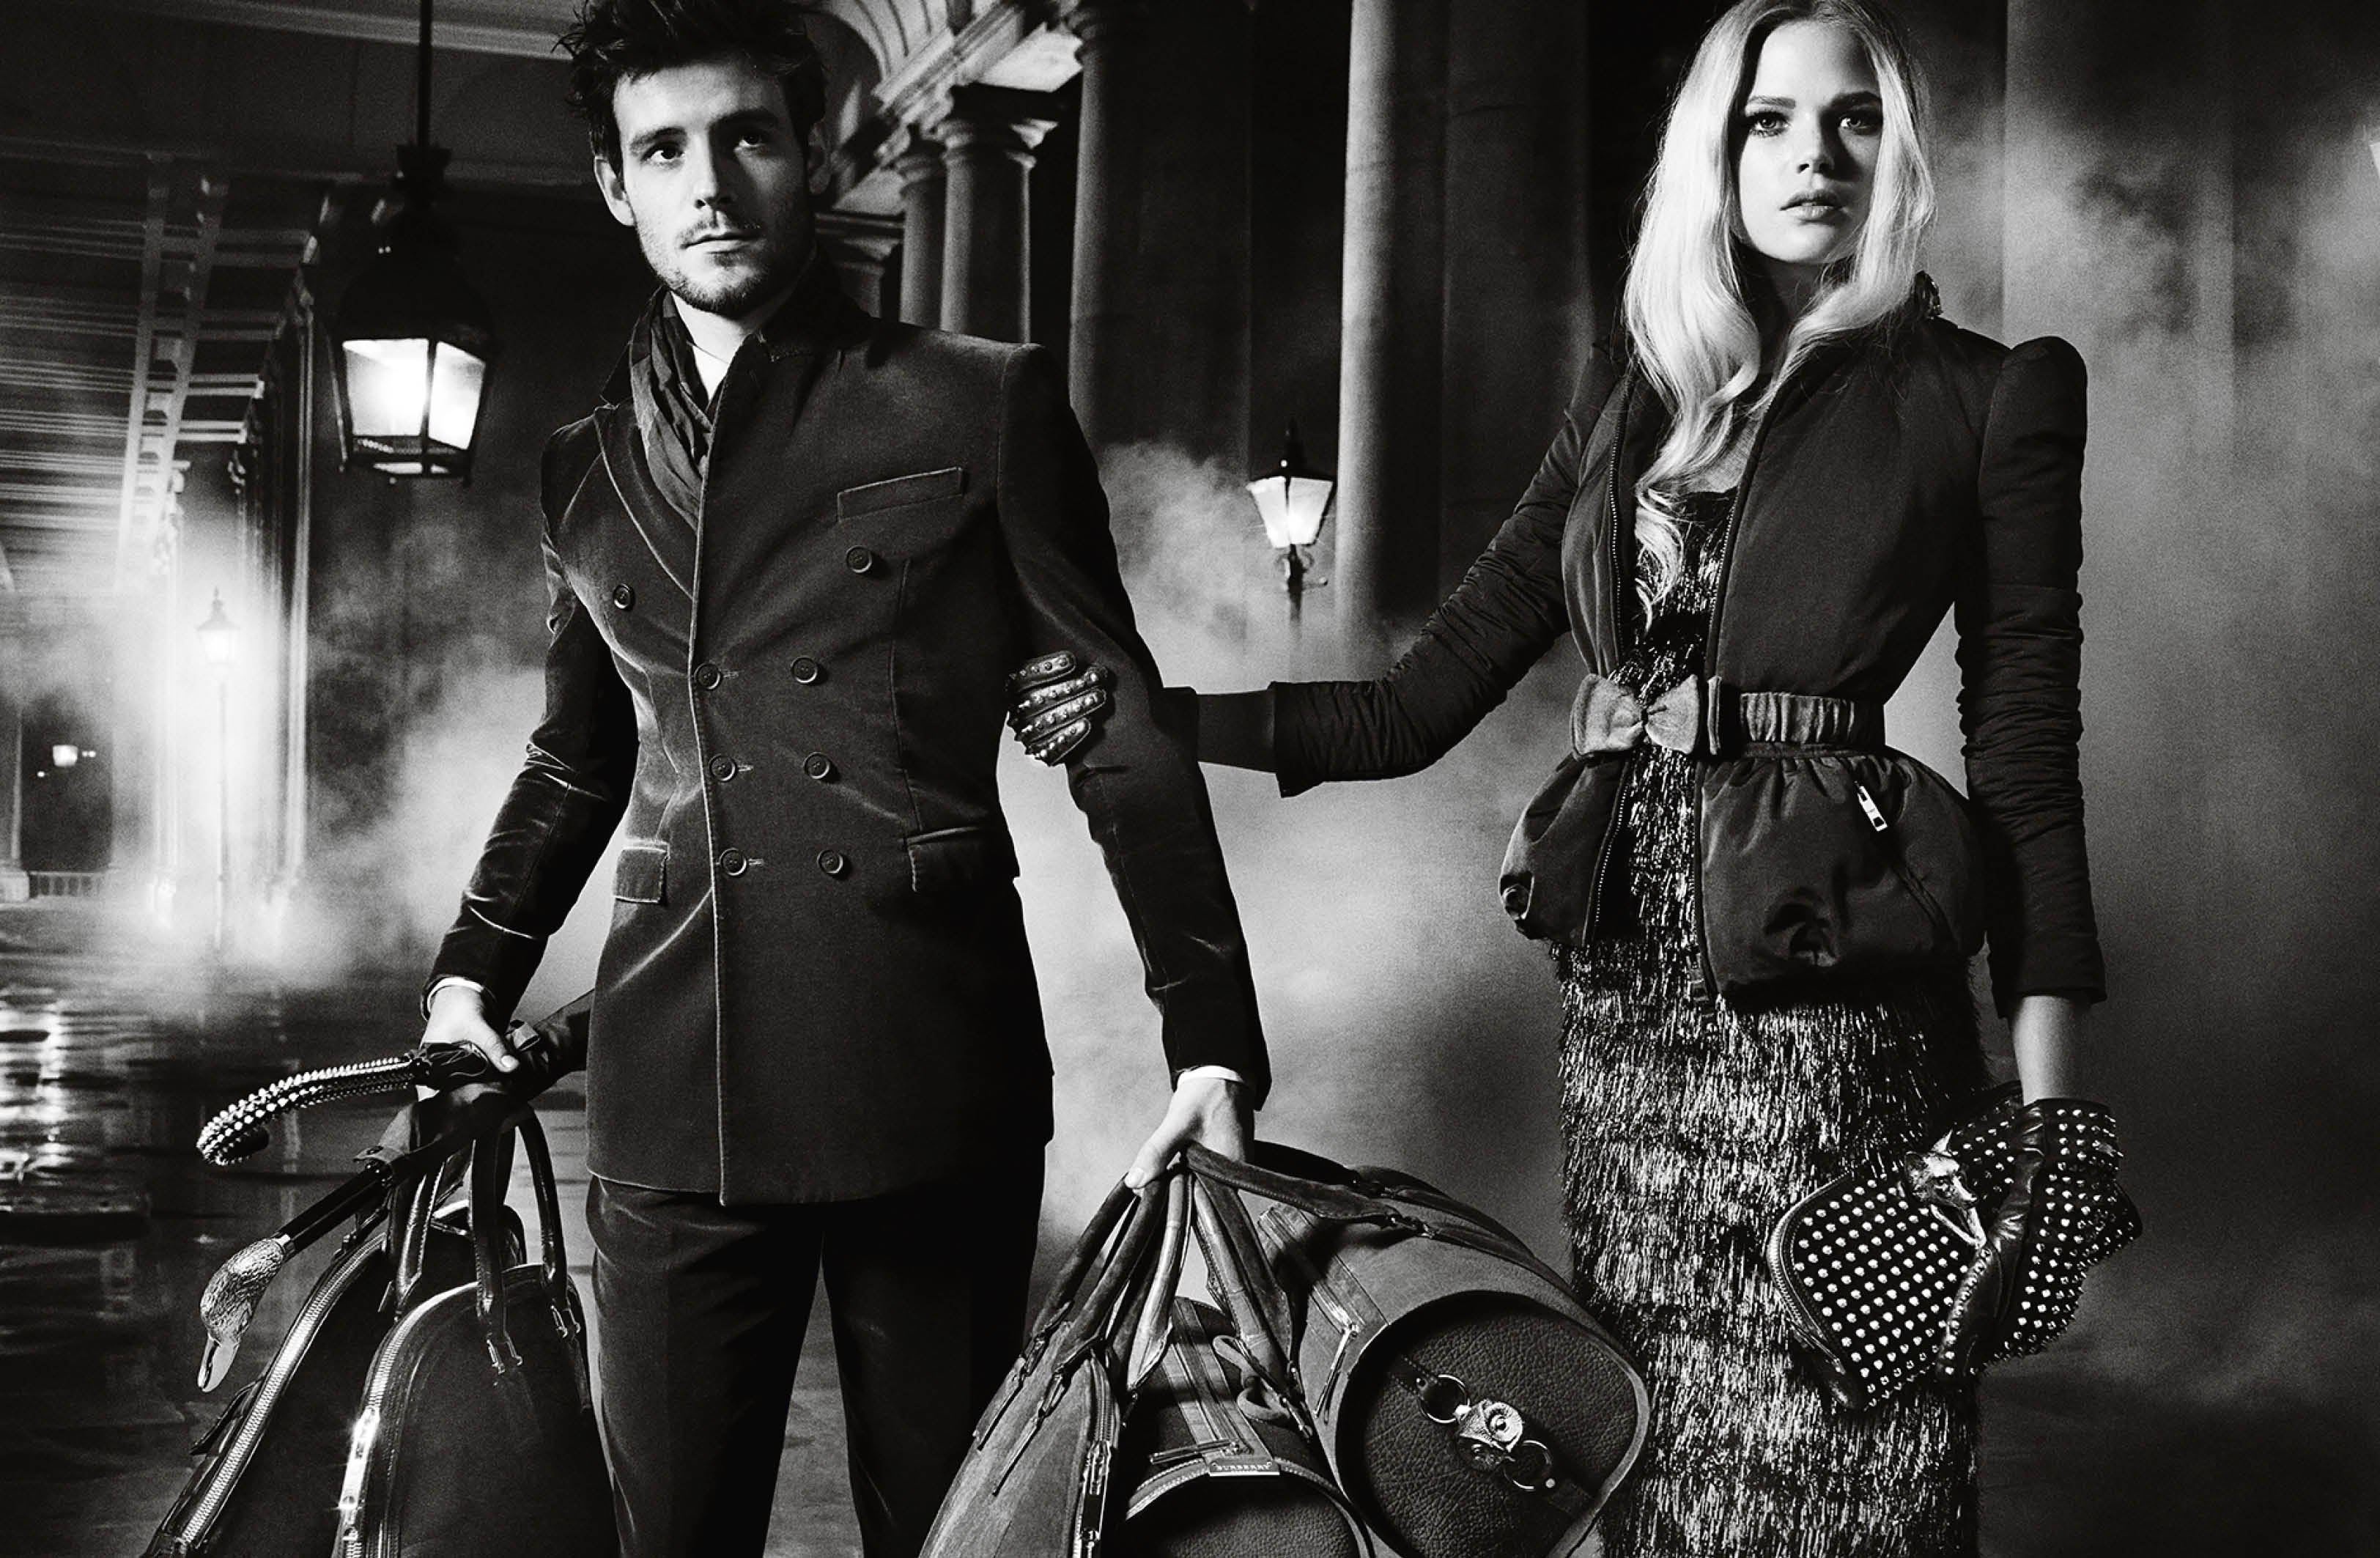 Burberry Autumn_Winter 2012 Ad Campaign featuring Roo Panes and Gabriella Wilde